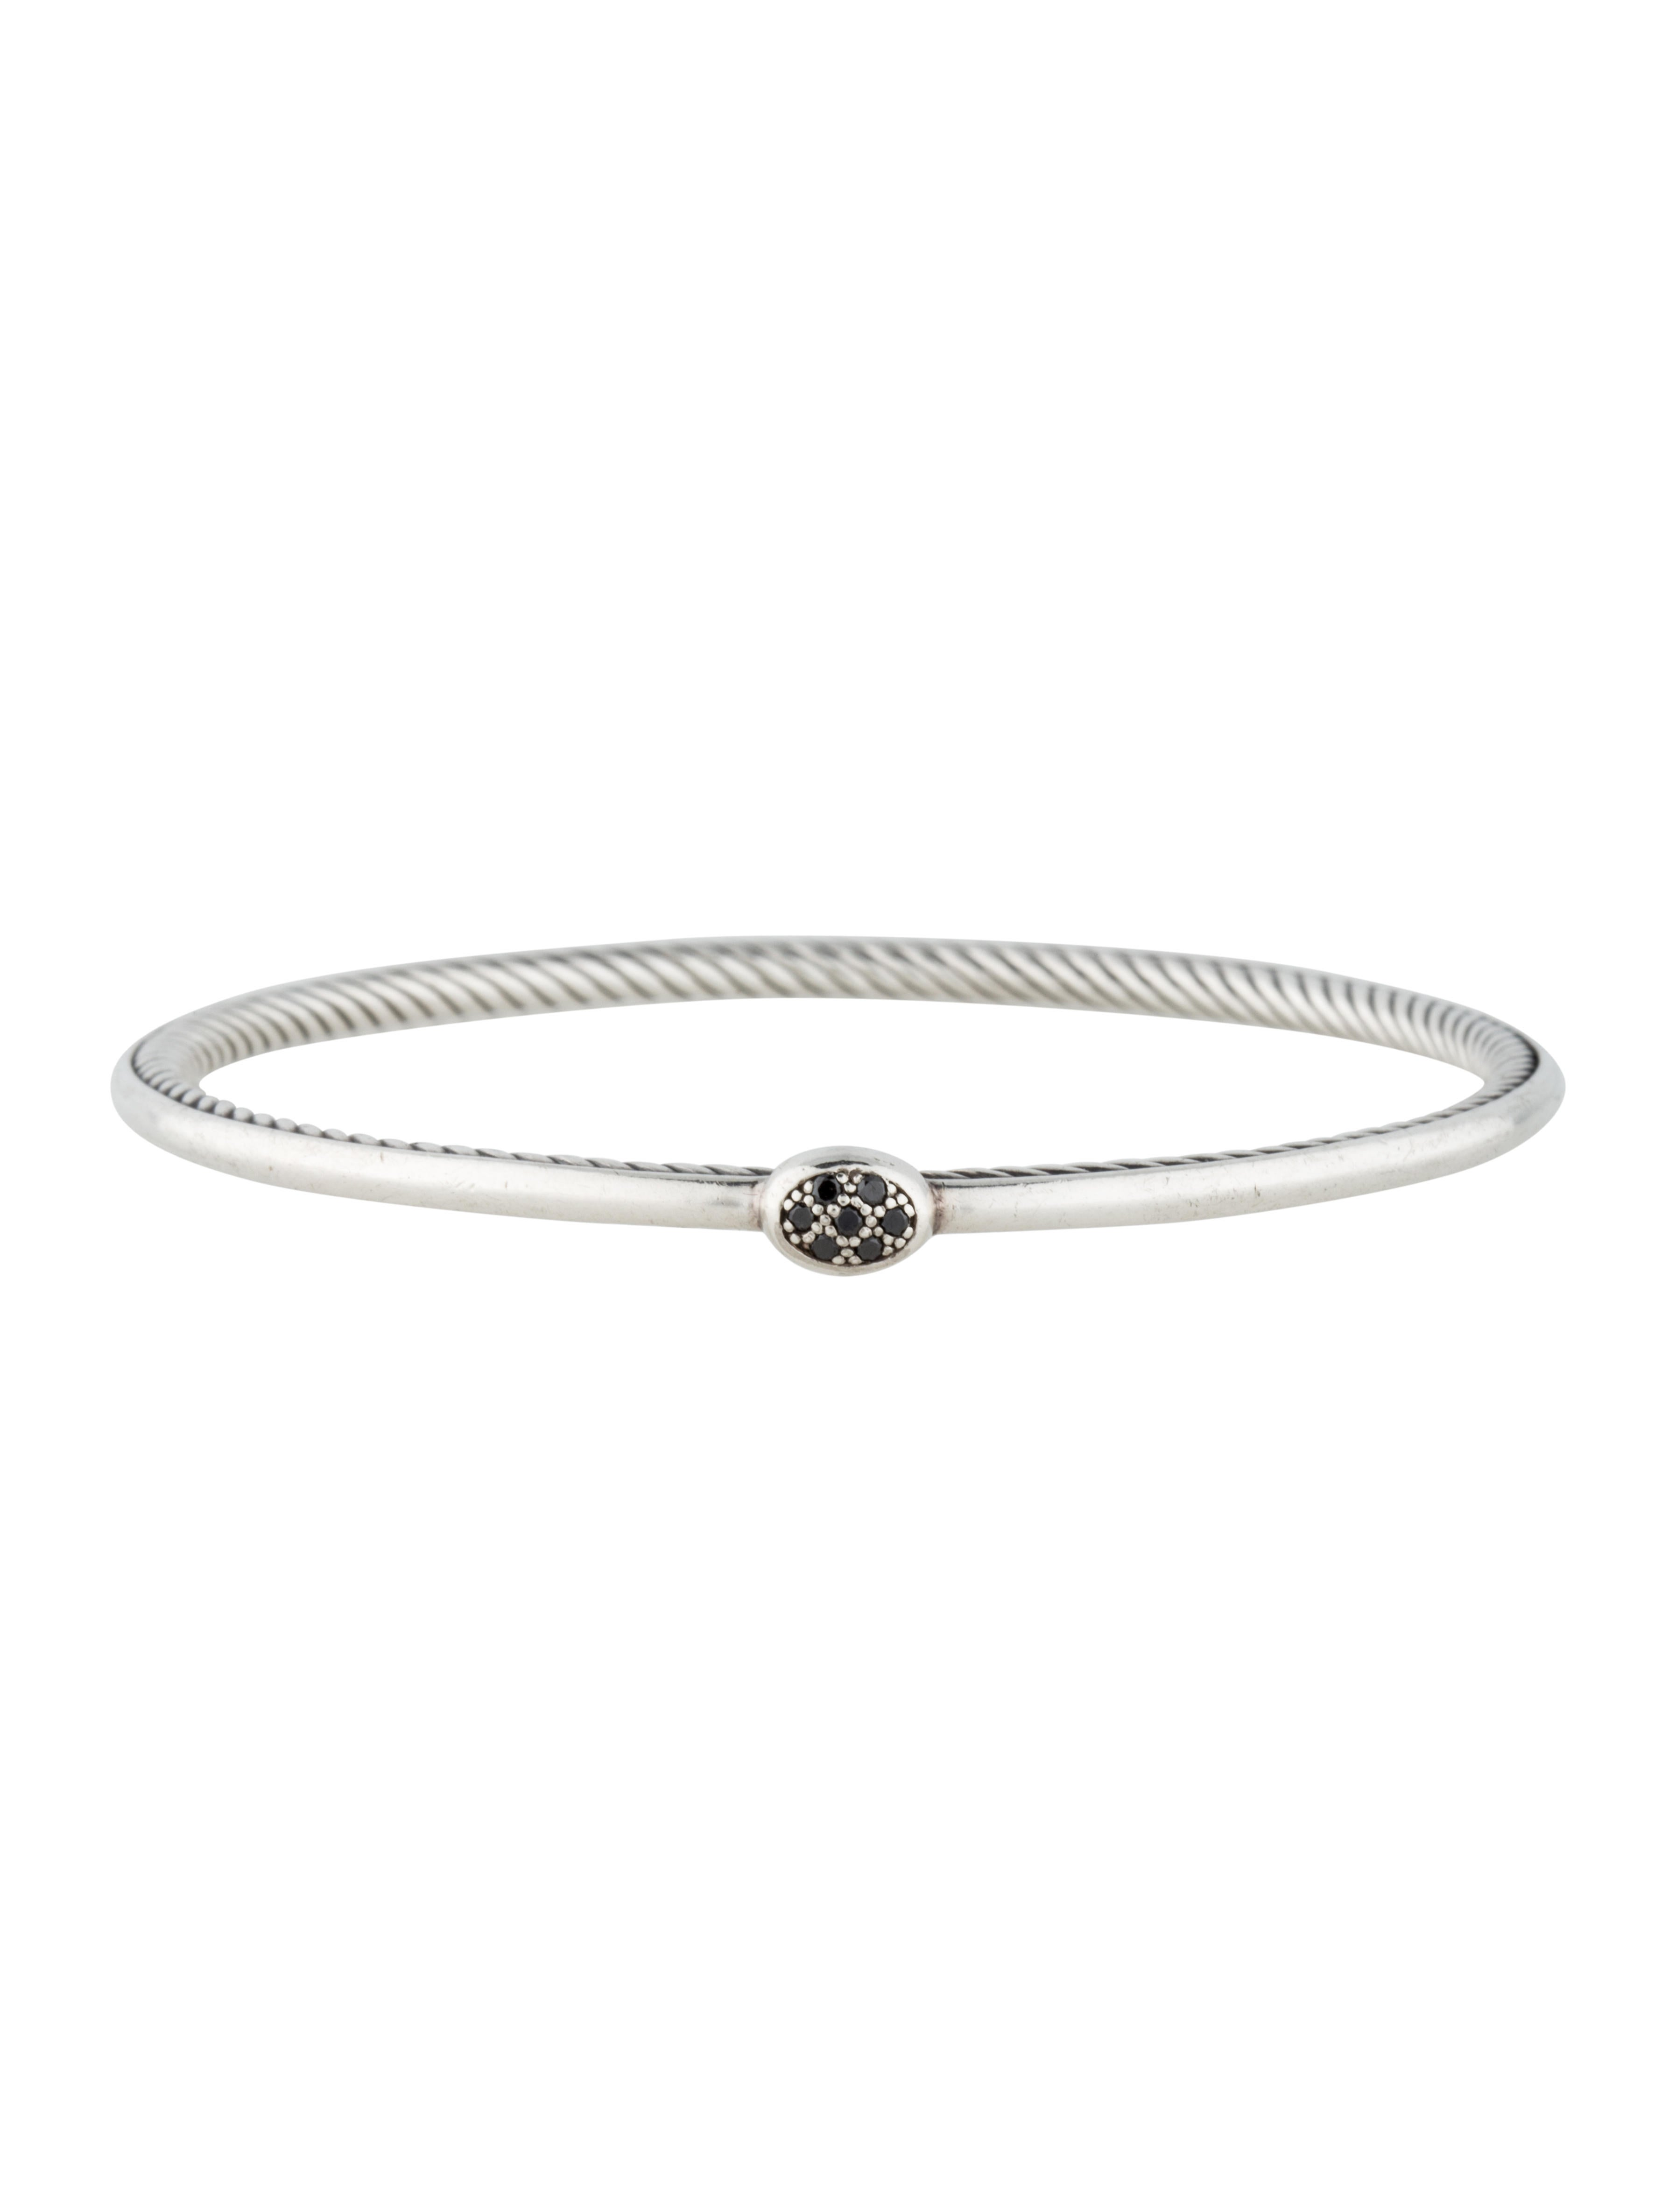 David yurman black diamond inside cable bracelet for David yurman inspired bracelet cable